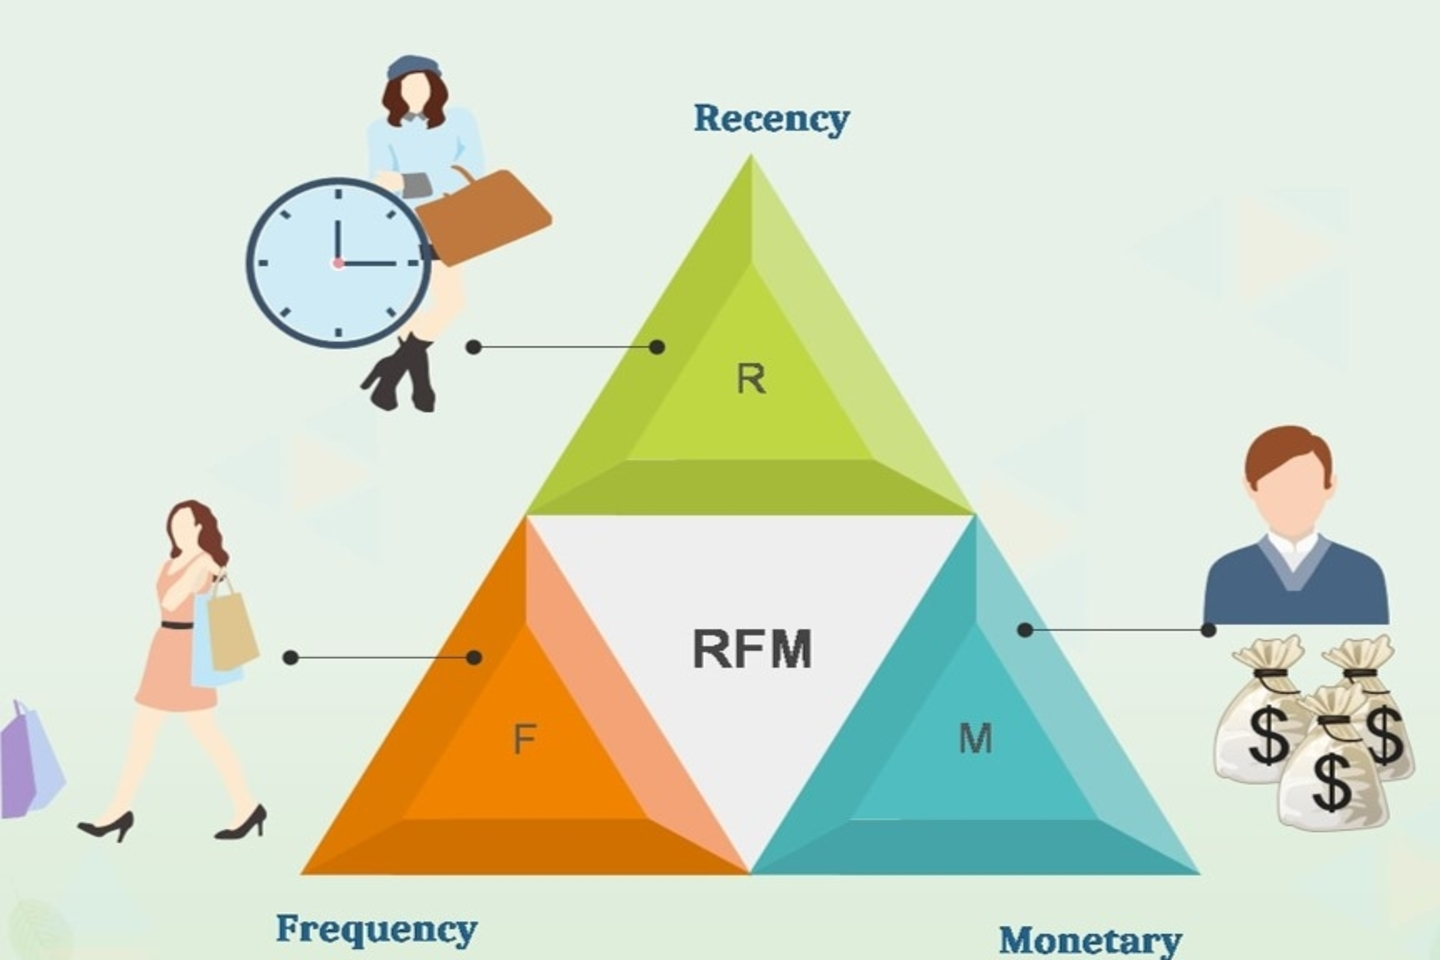 RFM analysis for Customer Segmentation